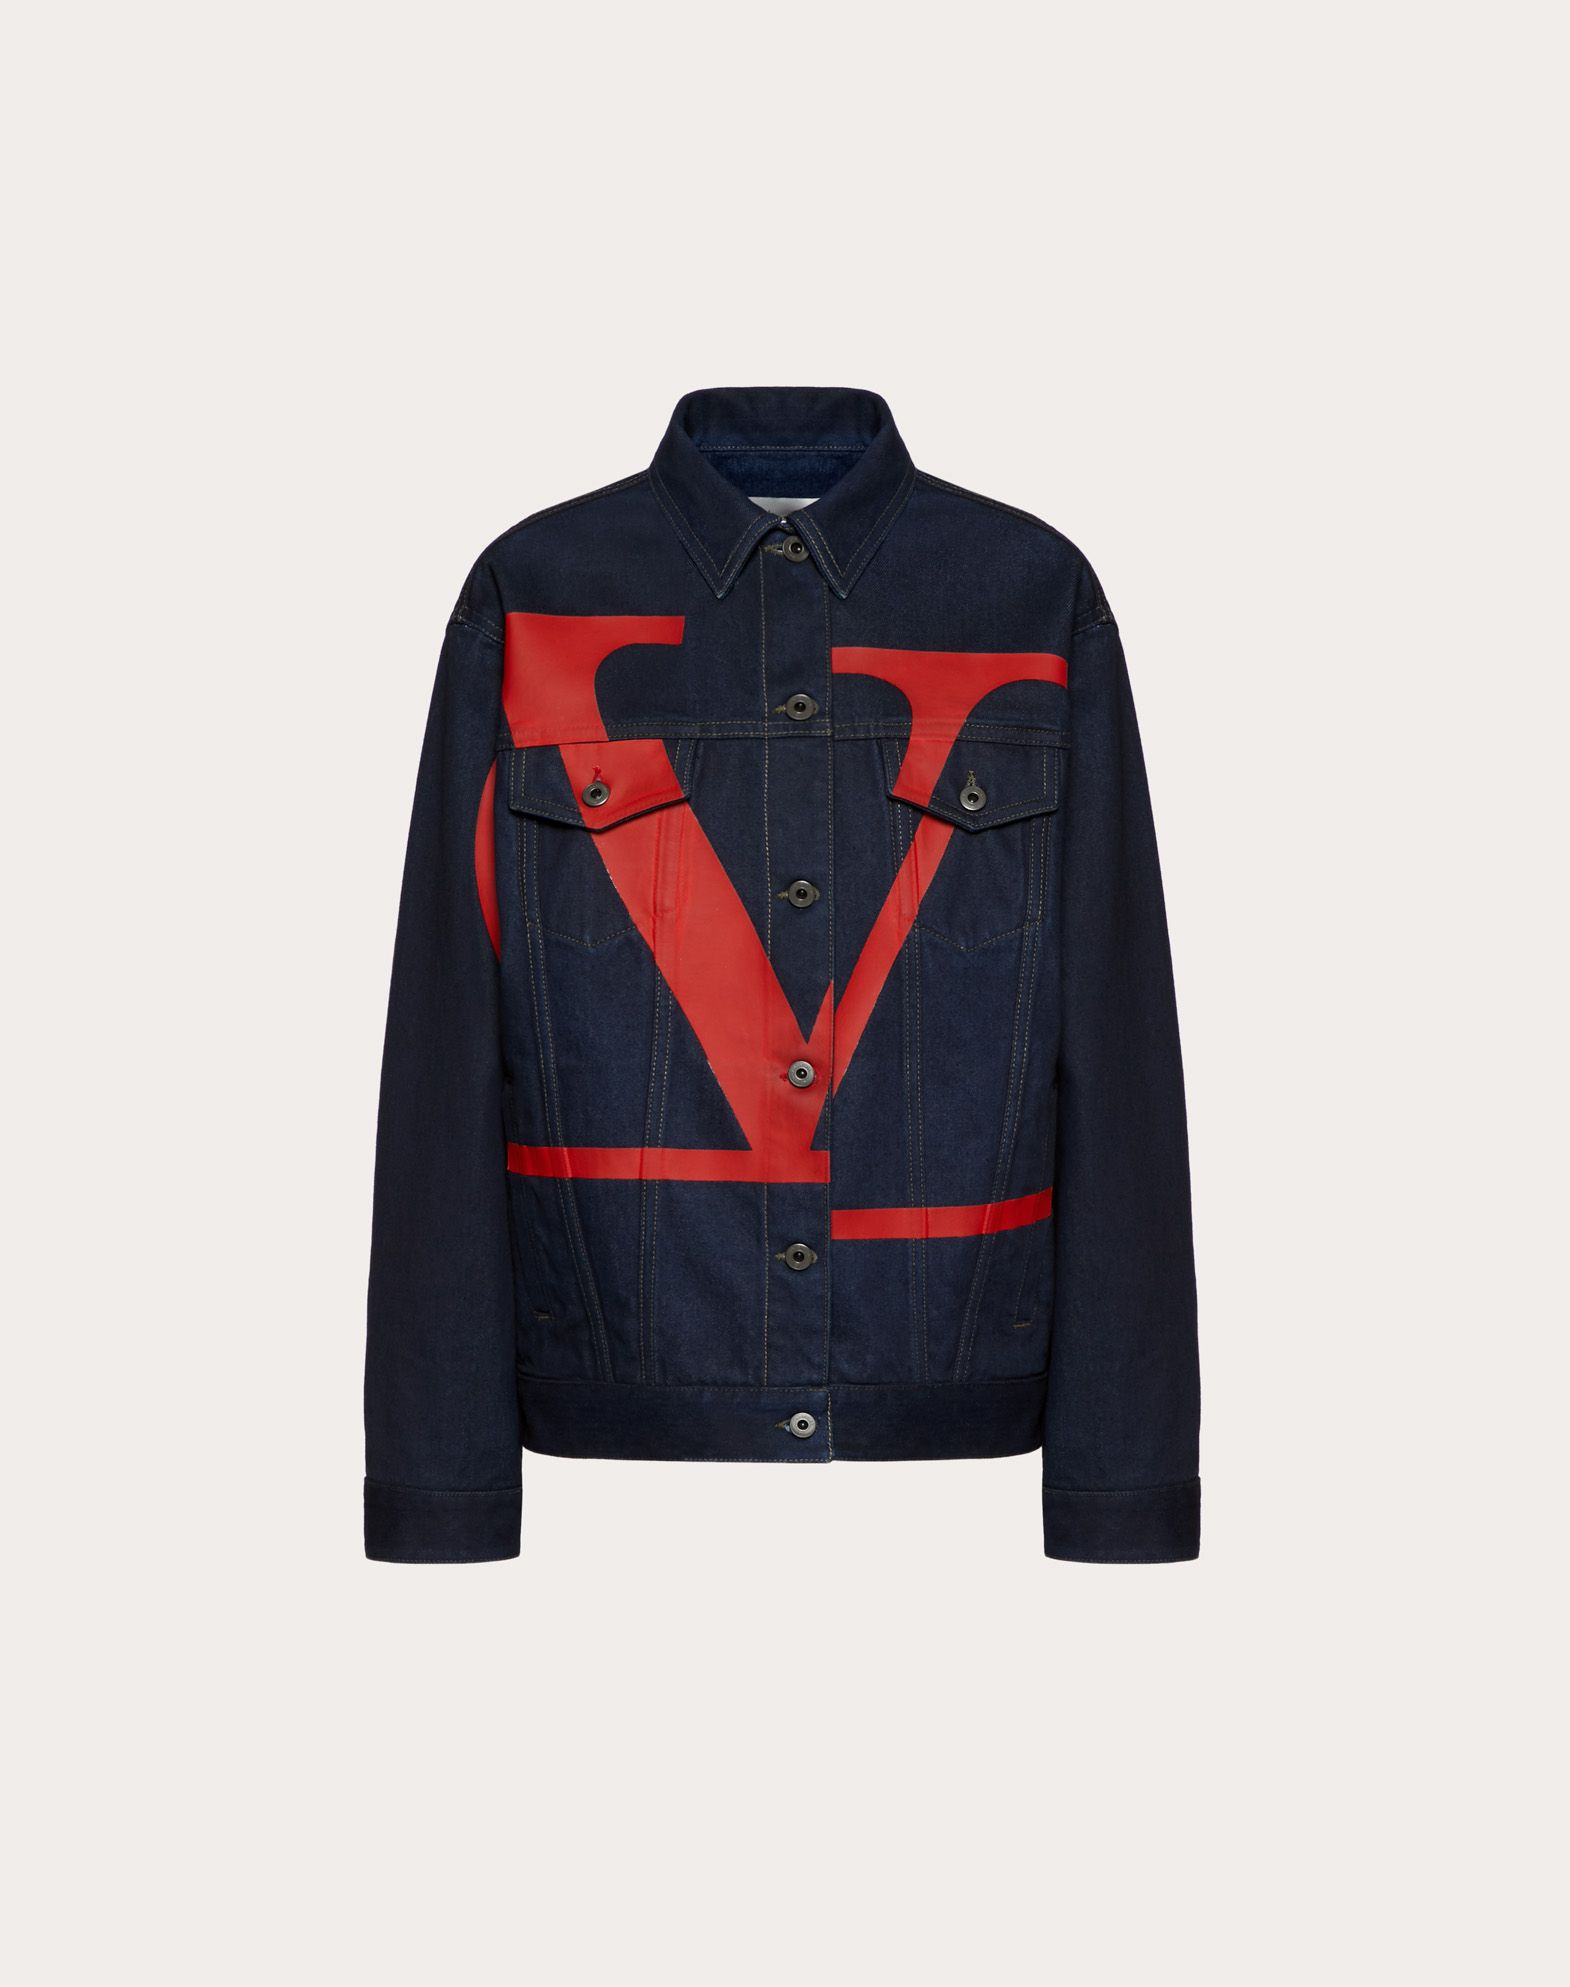 VLOGO DENIM JACKET